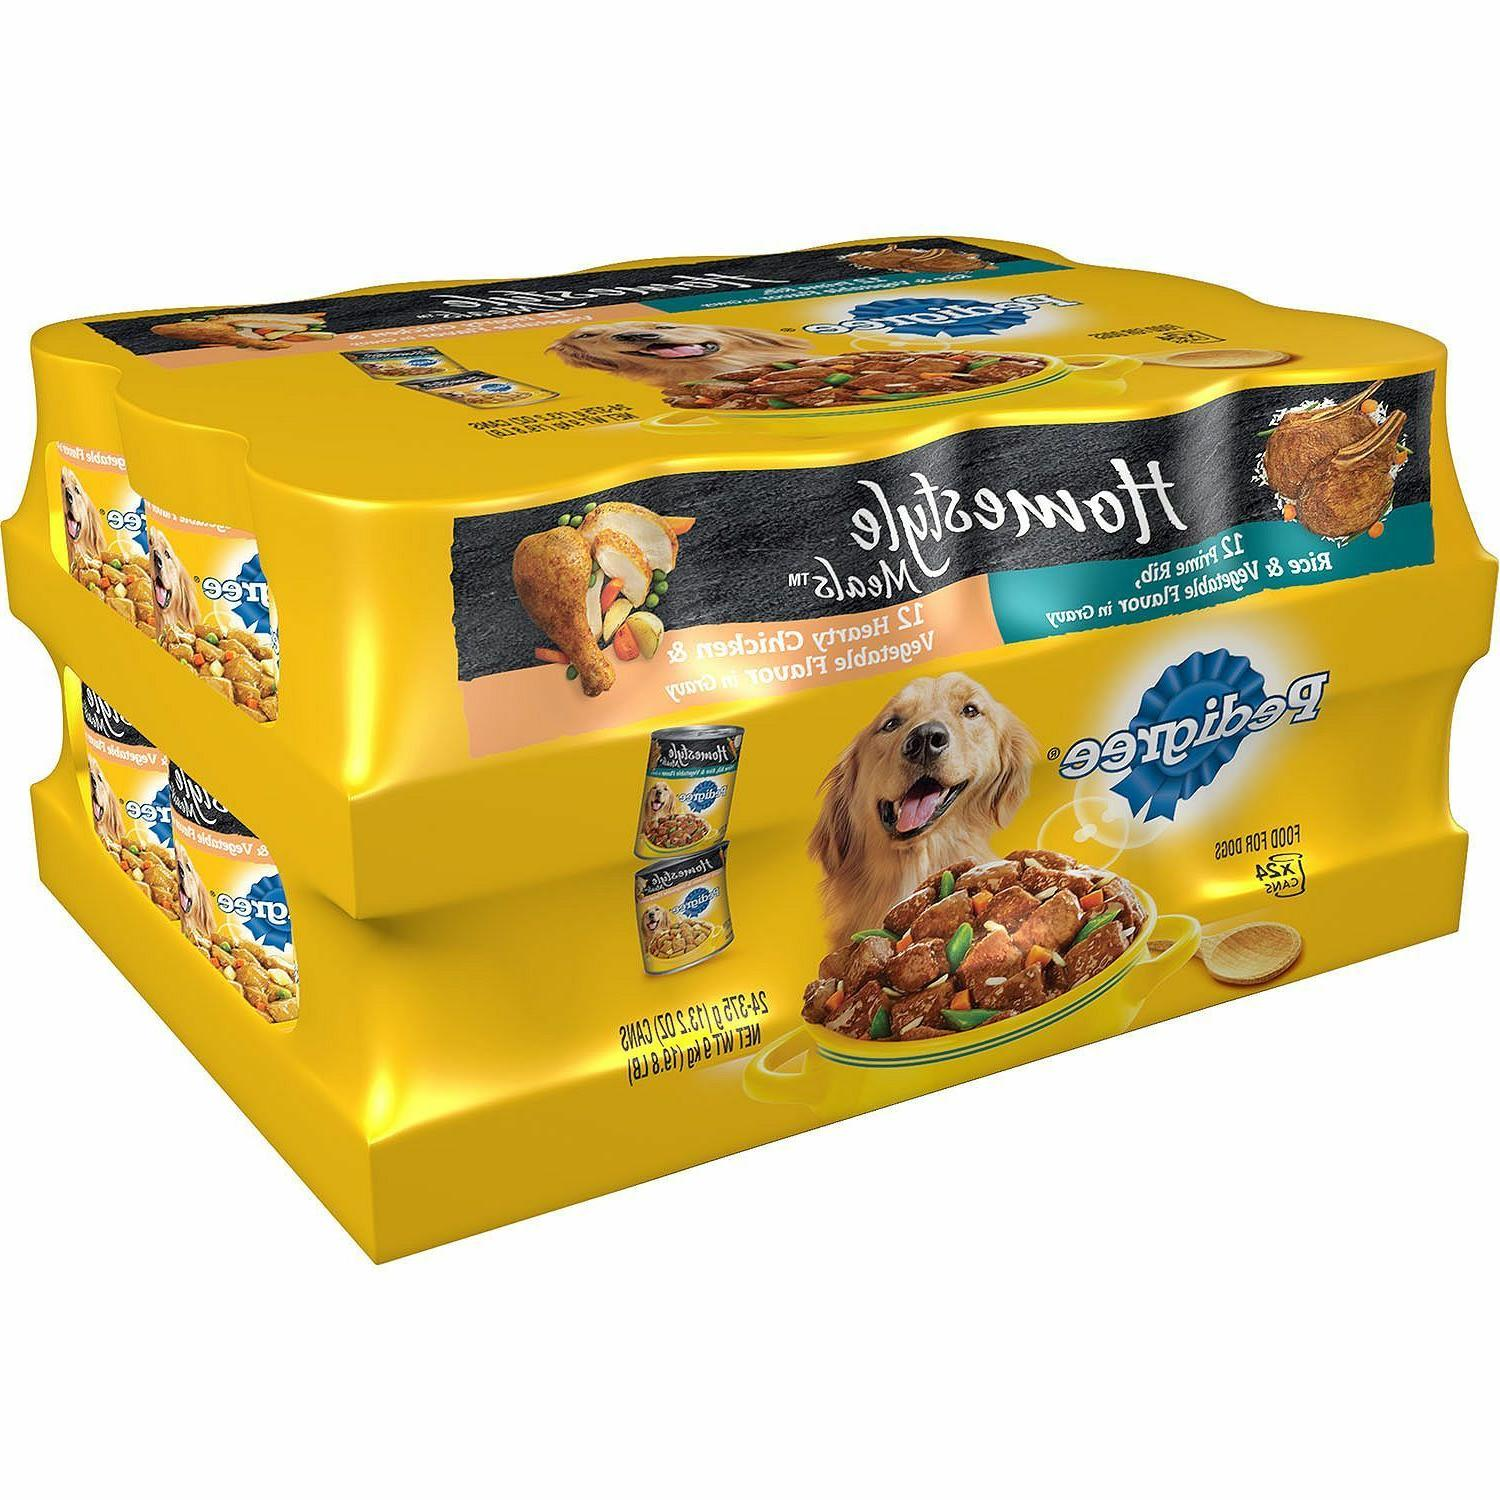 Pedigree Homestyle Choice Cuts Wet Dog Food Variety Pack 24